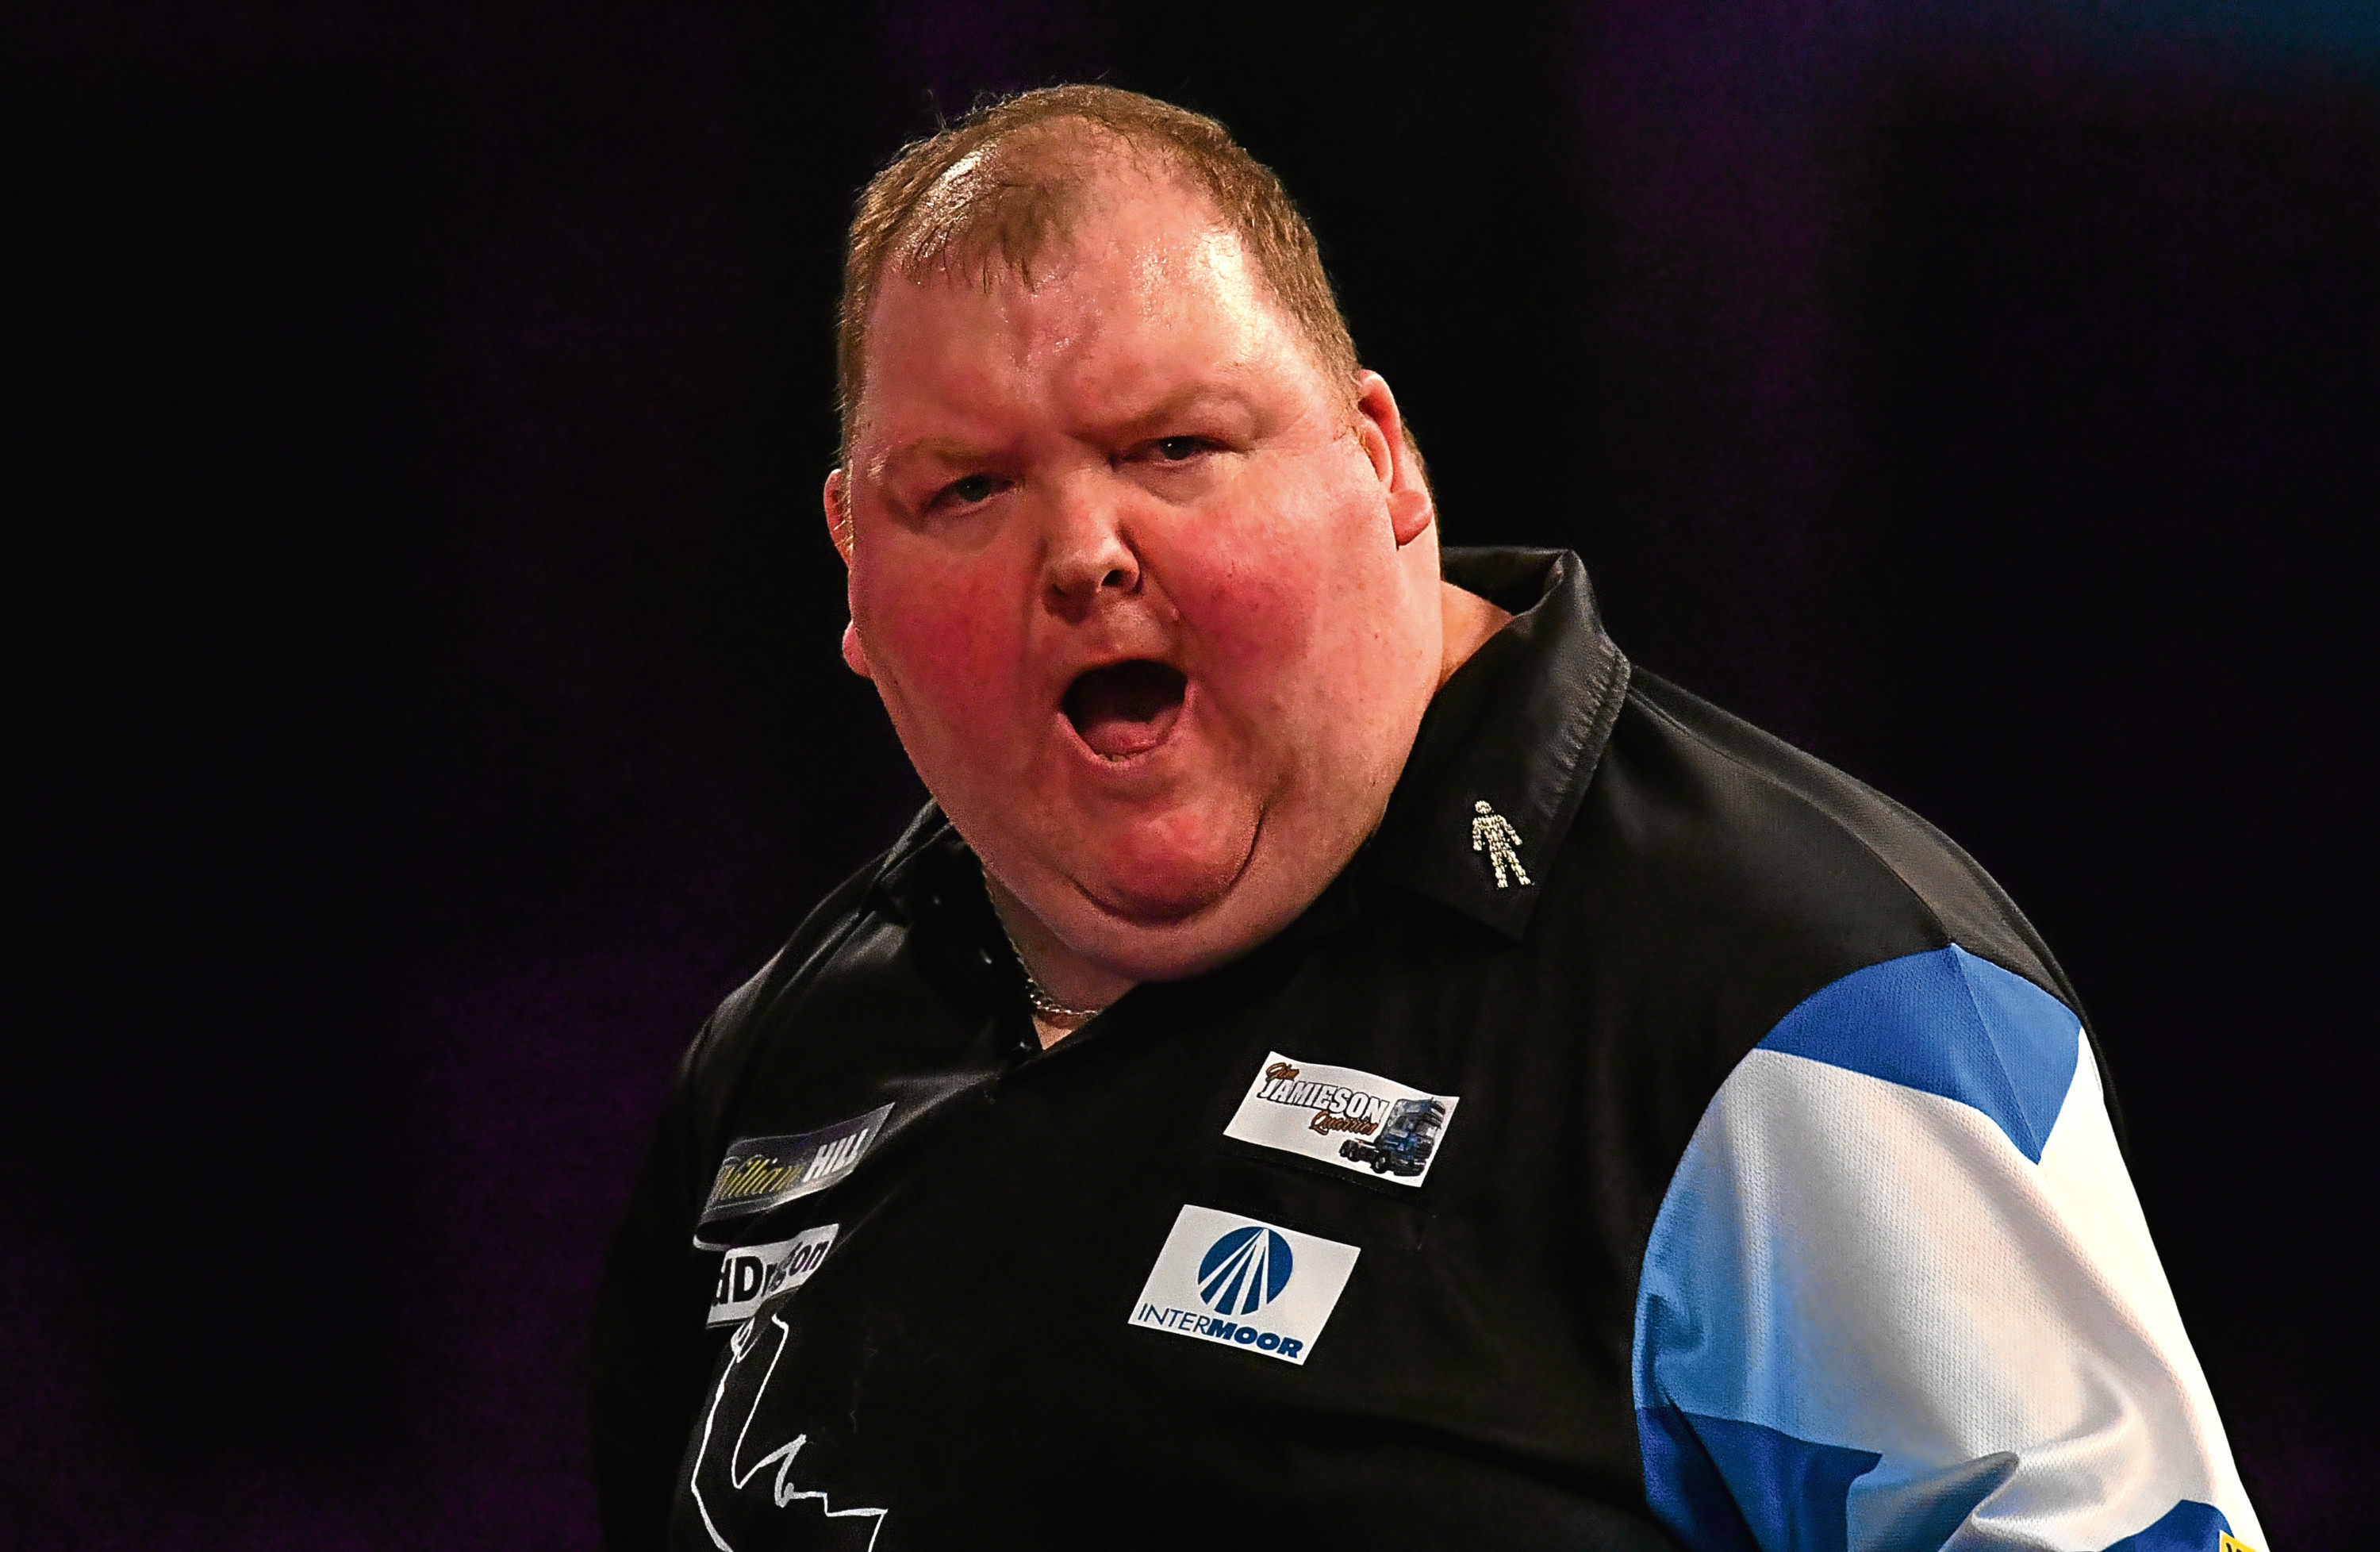 John Henderson reacts during his Third Round Match against Rob Cross.